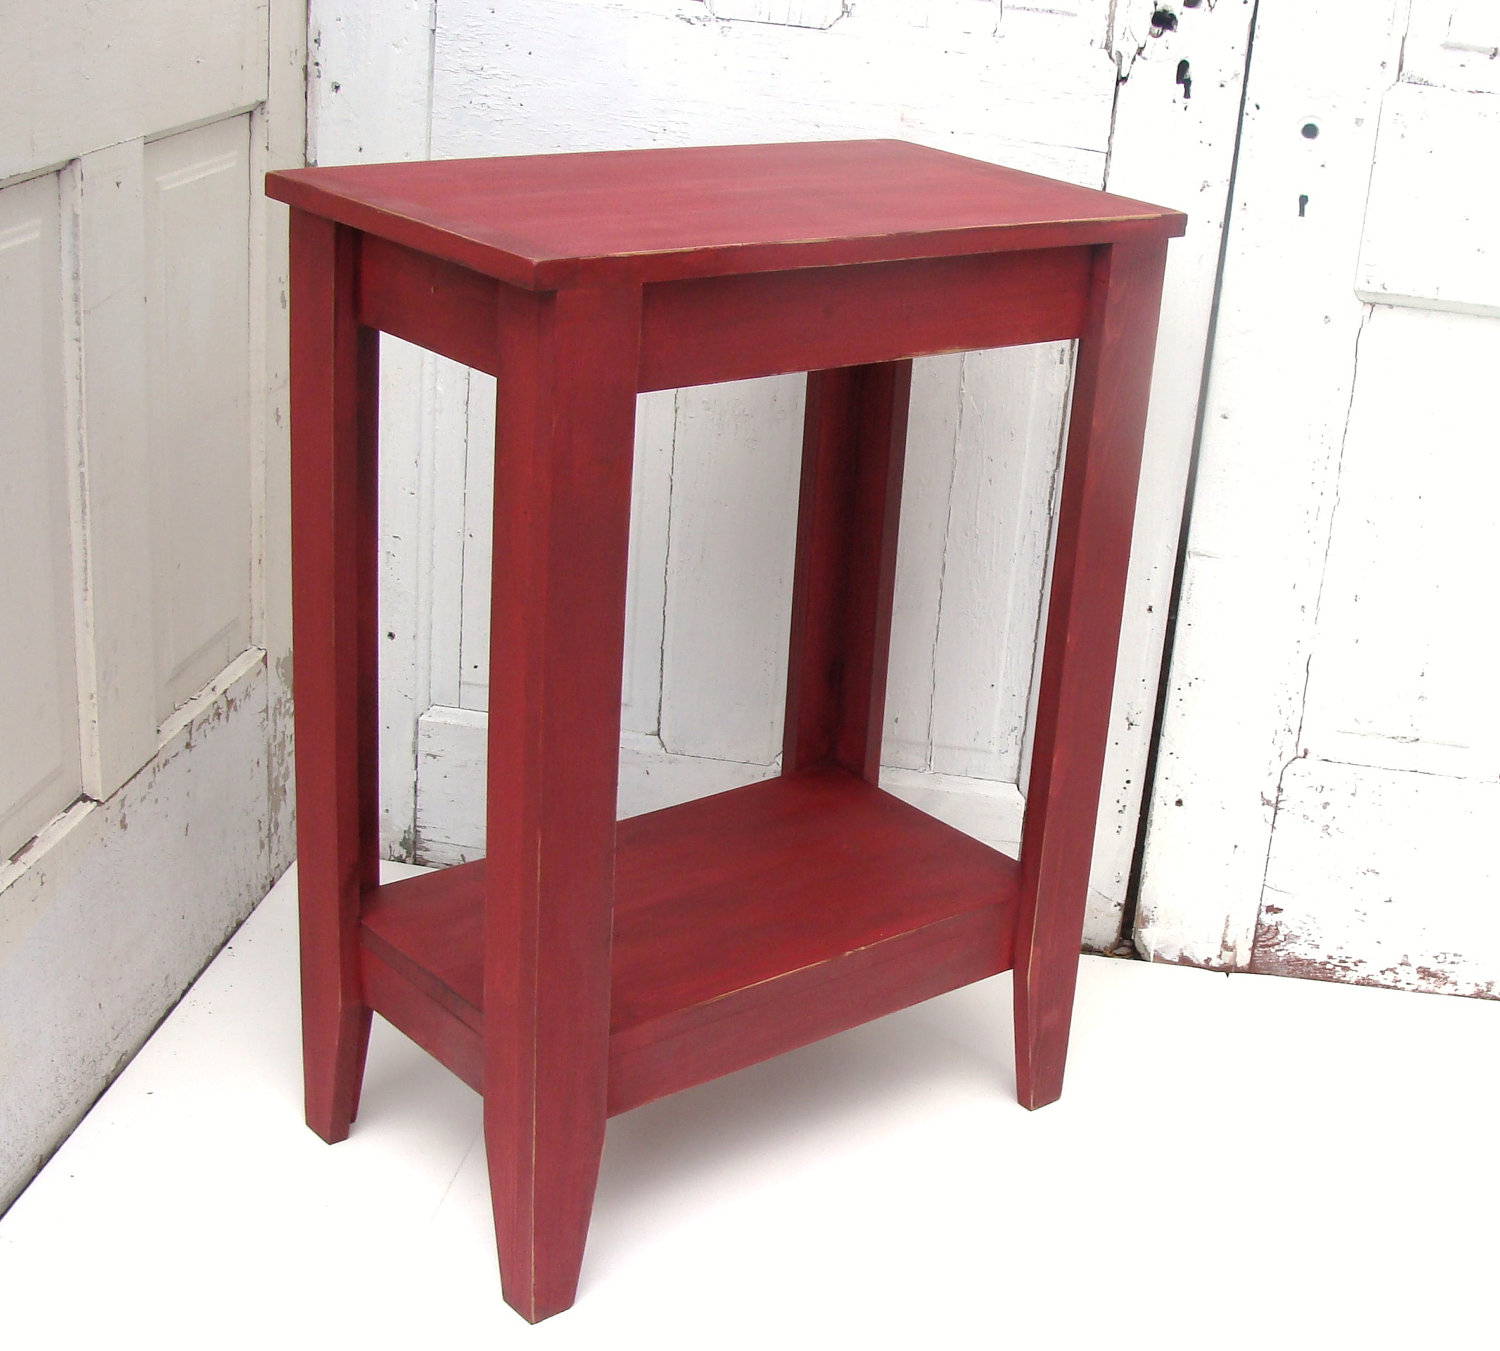 entryway table side console rustic painted accent red ideas drawer chest grill griddle glass kitchen teak garden furniture set dining distressed metal replacement legs large cream